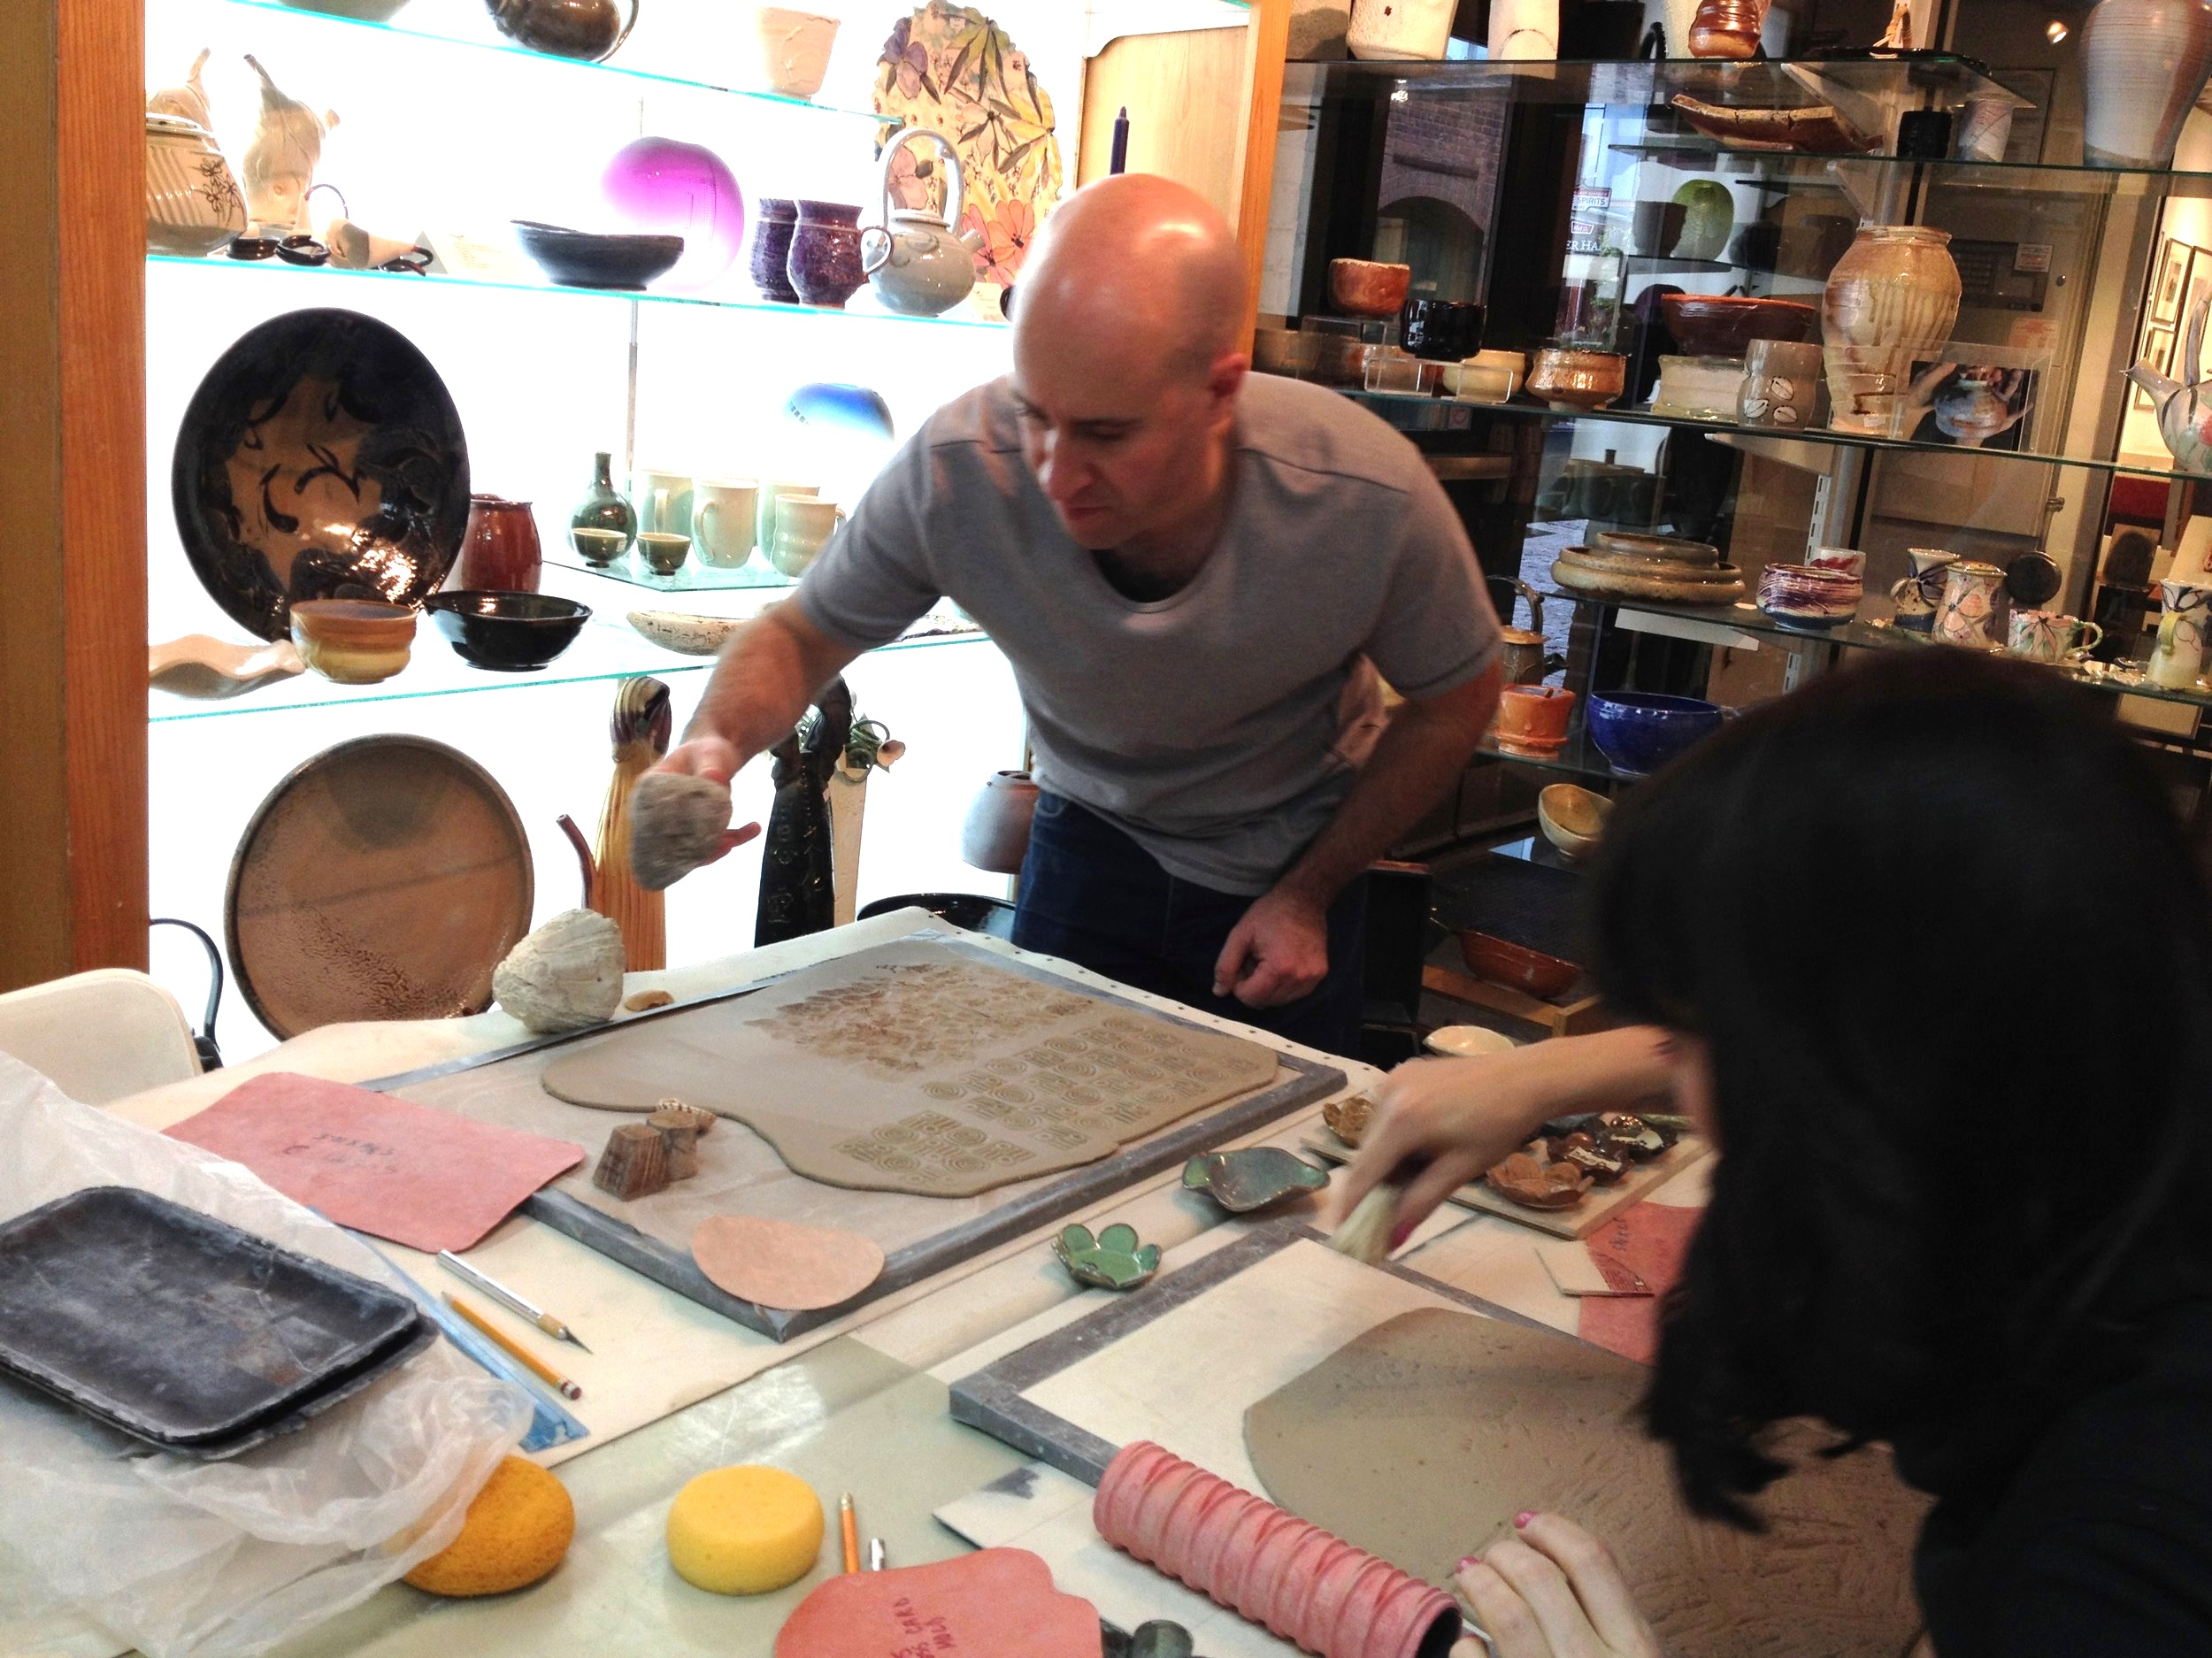 Tile Decorating Workshop.  Plan your ideas on paper before transferring your designs to 6 x 6 inch tiles.  Explore a variety of decorating techniques and learn to pour glaze over the surface of your tiles before the final firing.  .